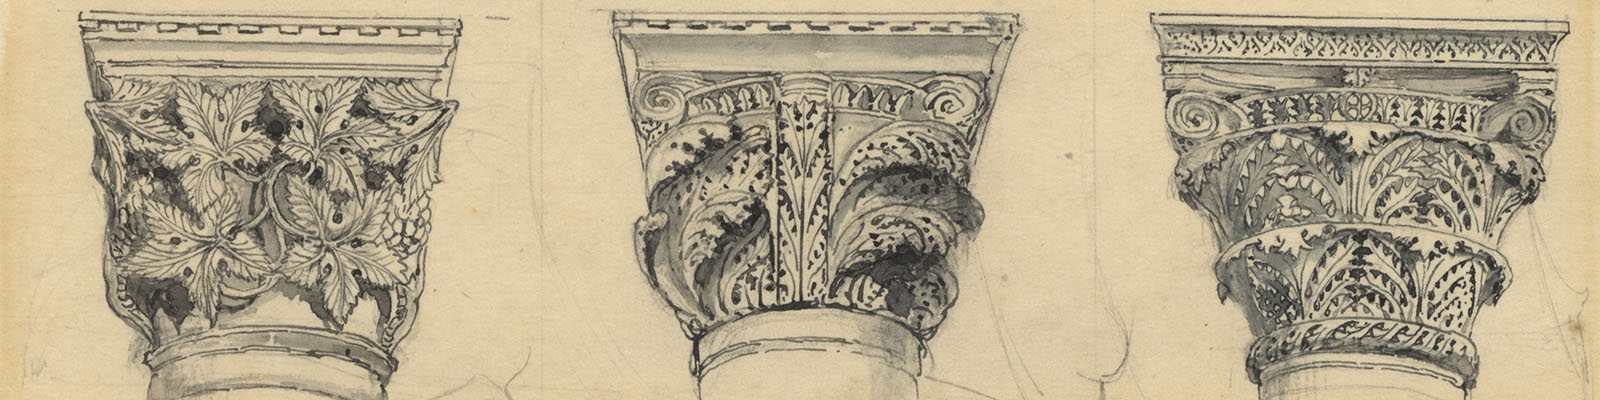 John Ruskin, Byzantine capitals, concave group